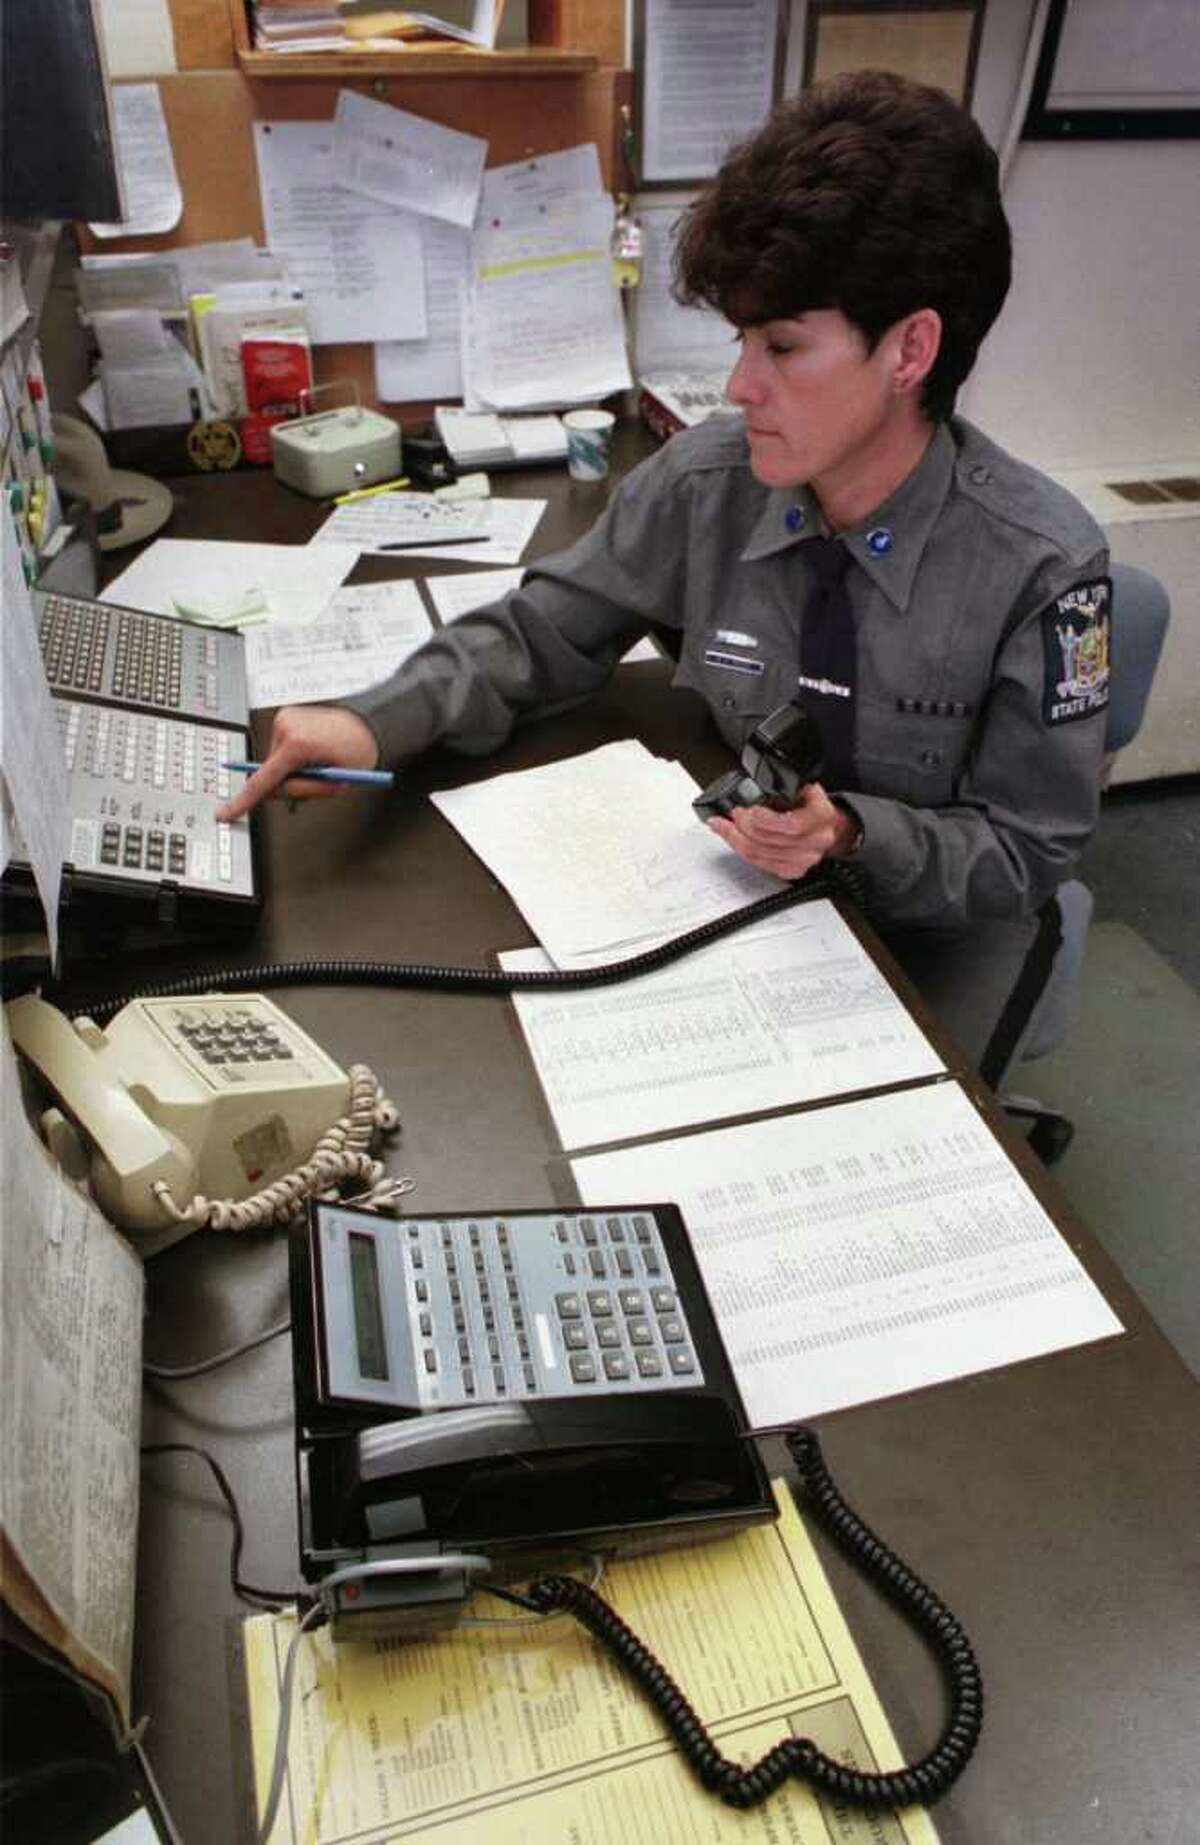 Times Union Staff Photo by Jonathan Fickies -- New York State Trooper Maureen Tuffey answers calls at the front desk at Troop G Headquarters in Loudonville Friday October 6, 1998. Capital Region 911 calls made from cellular phones come through on the black phone at bottom, and two others like it in the office.